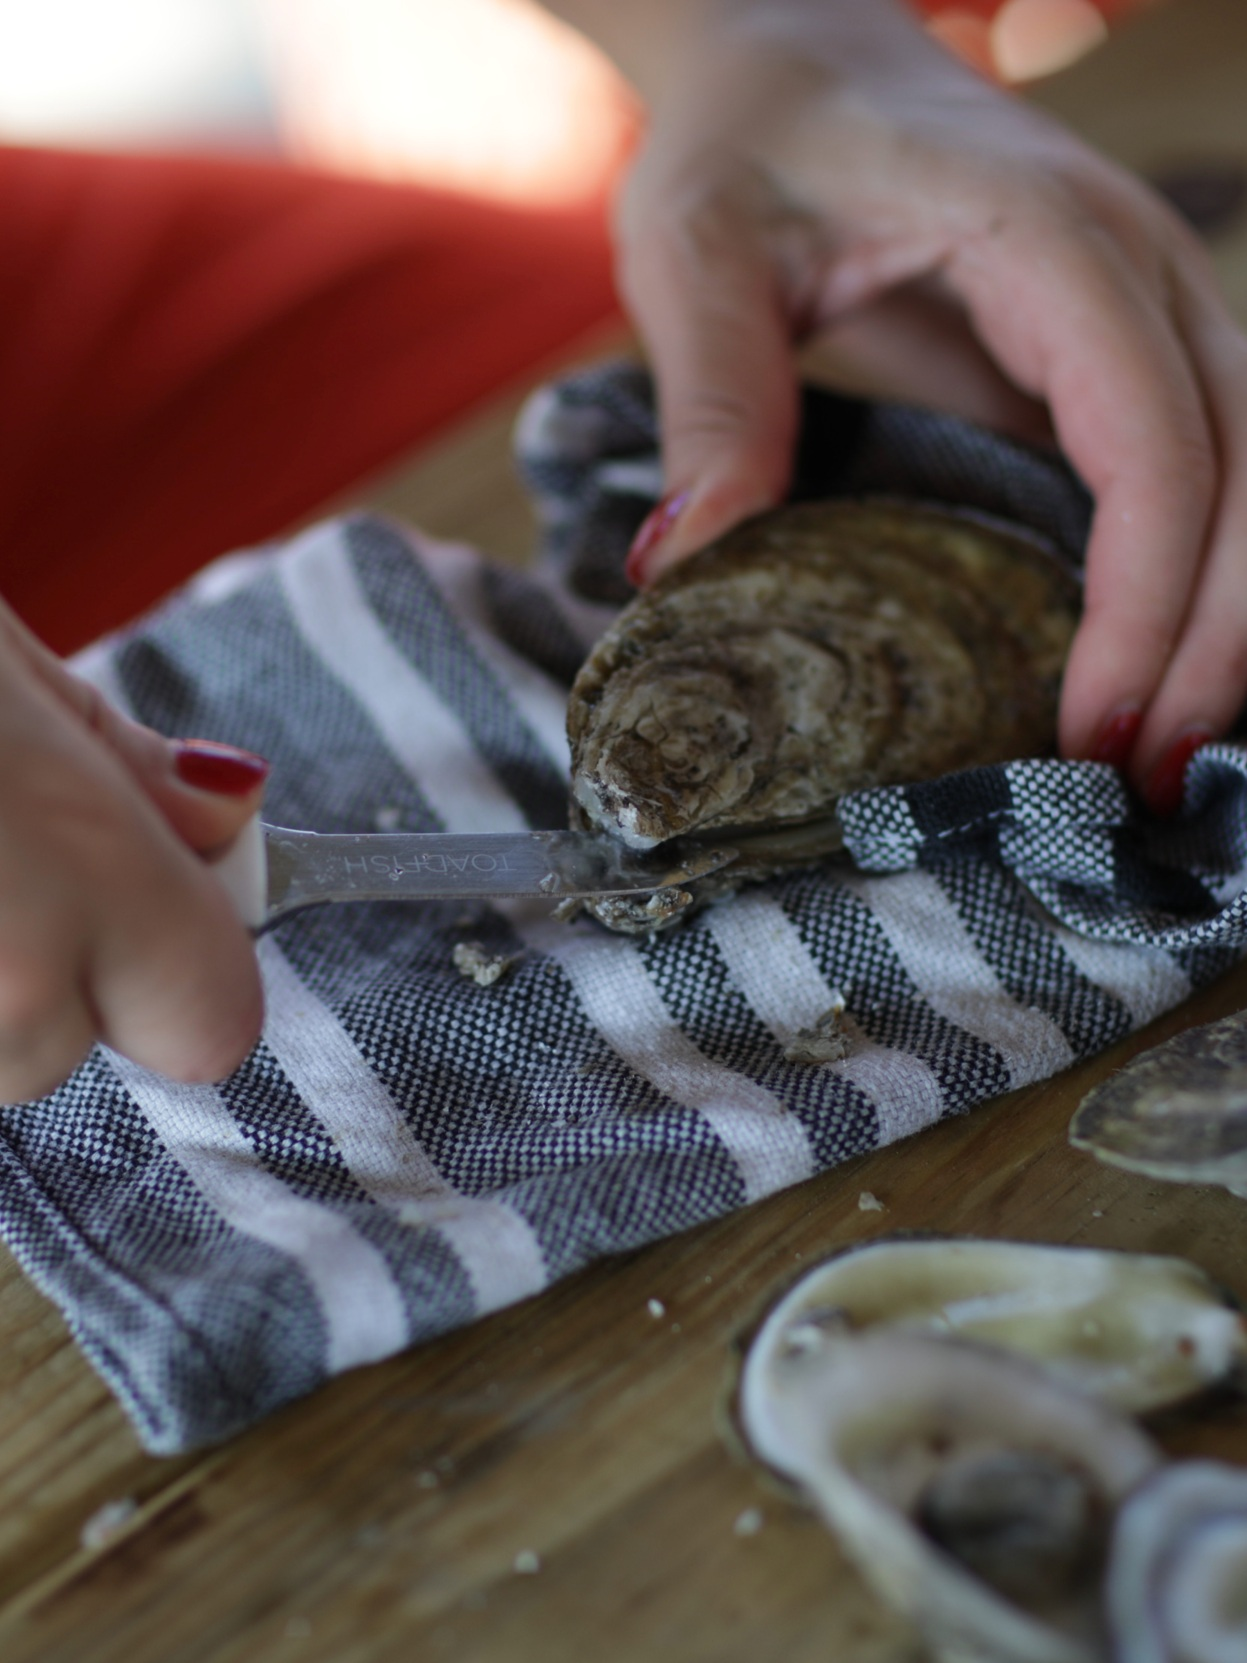 How to shuck an oyster: - 1. Roll a kitchen towel2. Place oyster hinge side down into the towel3. Wiggle the tip of the knife into the back hinge until you feel it unclasp4. Rotate your hand and feel the shell pop open5. Scrape the knife inside the top of the shell to unstick the oyster